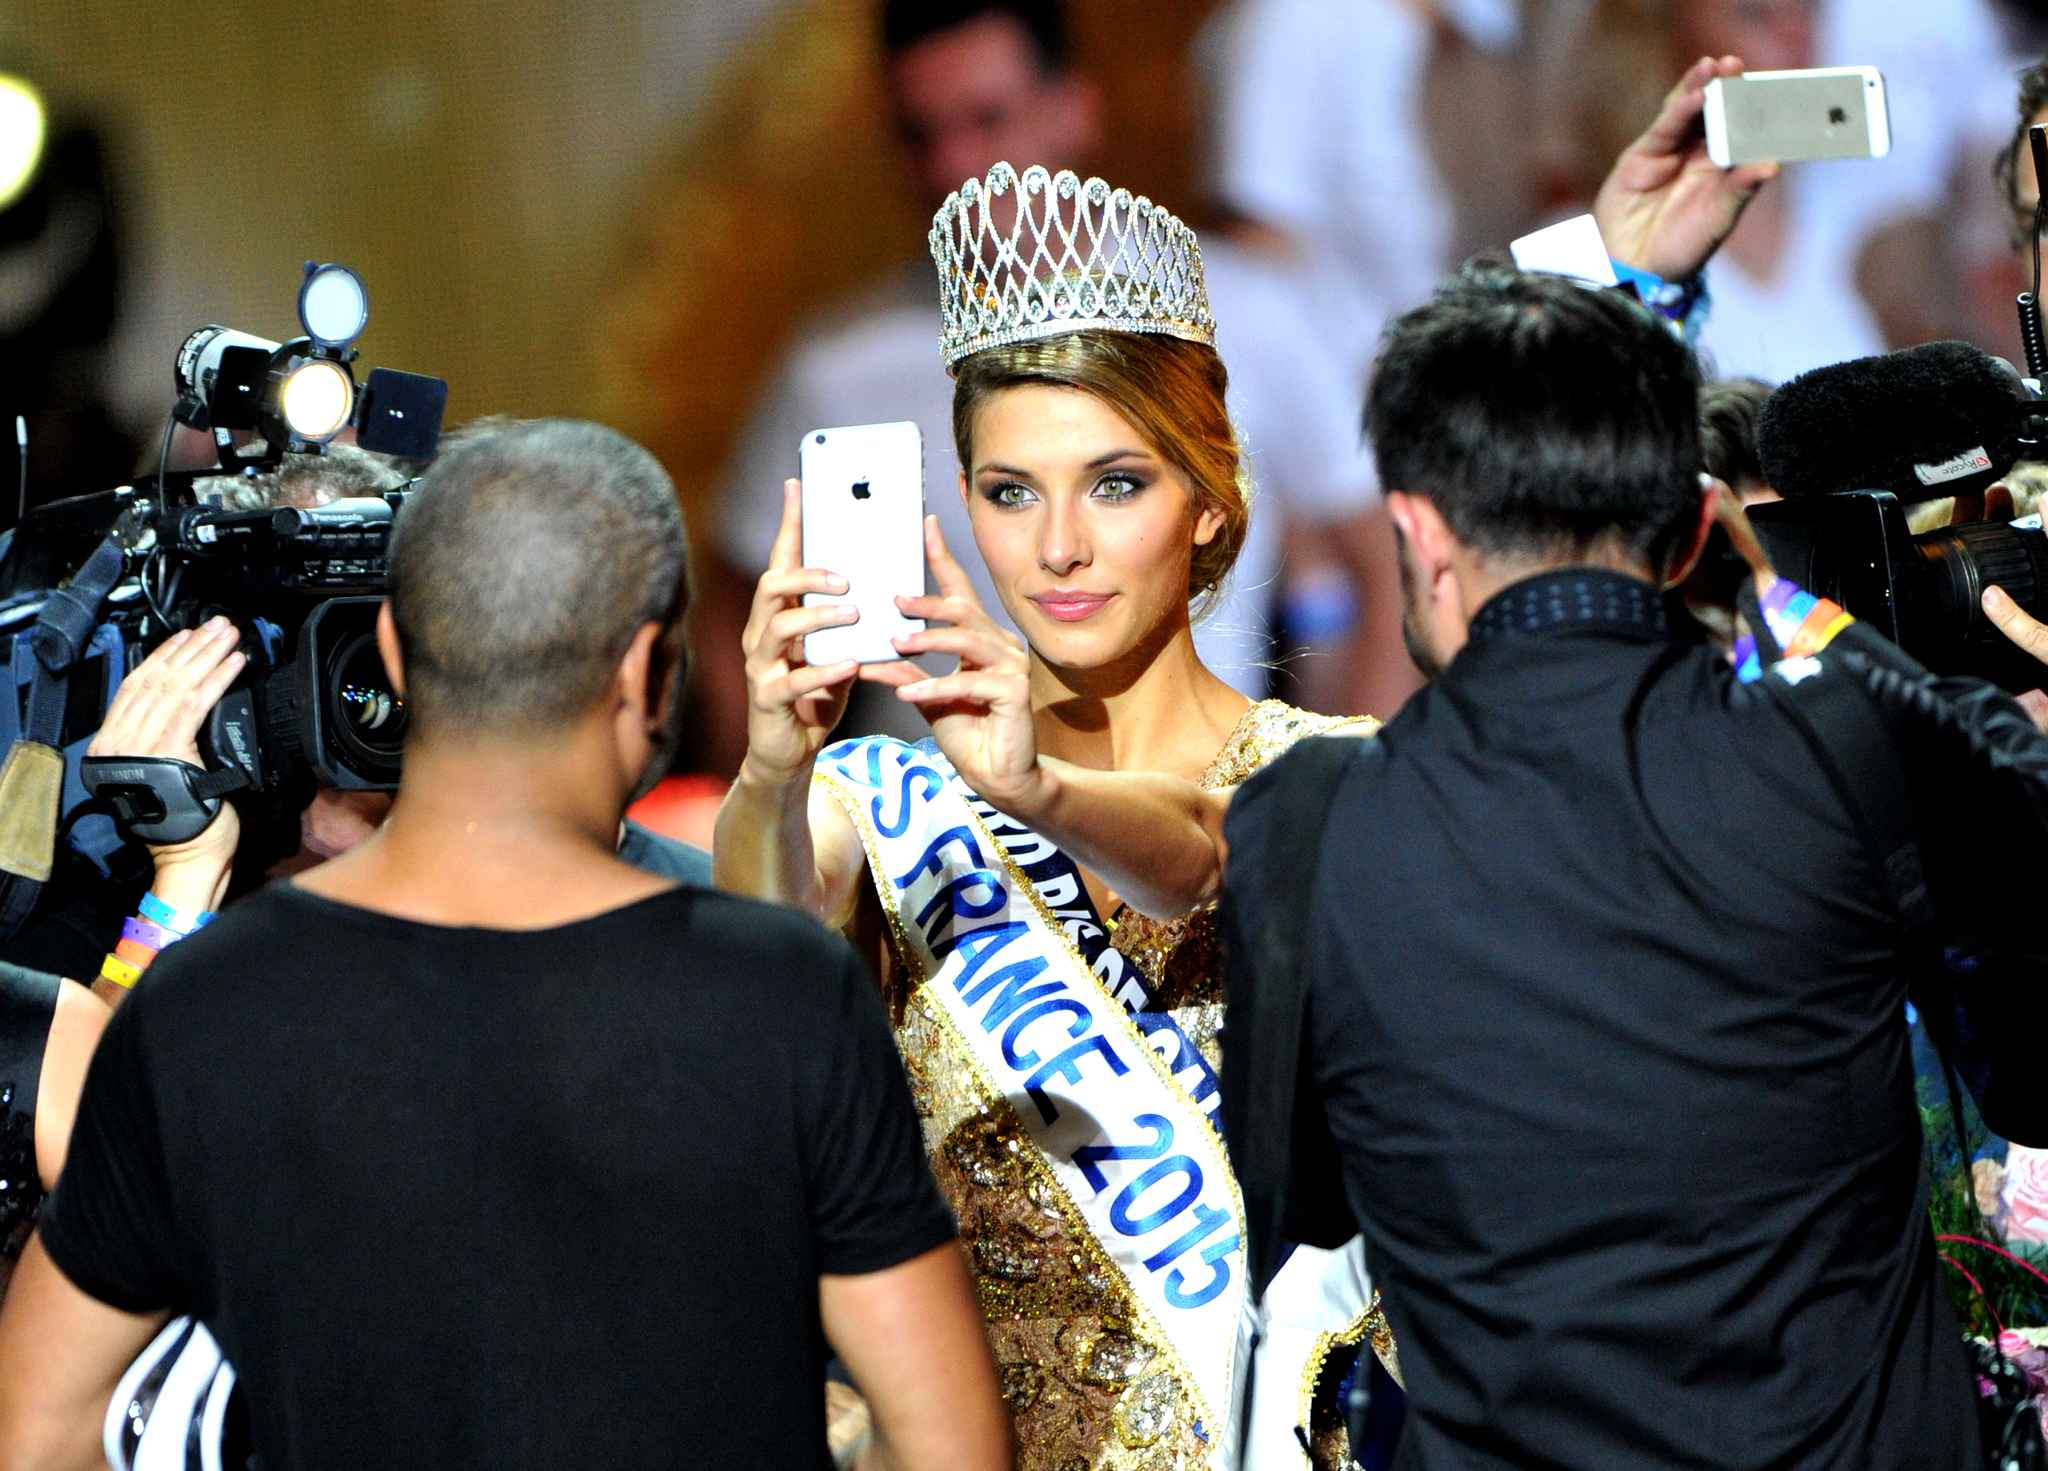 miss-nord-calais-camille-cerf-takes-098c-diaporama